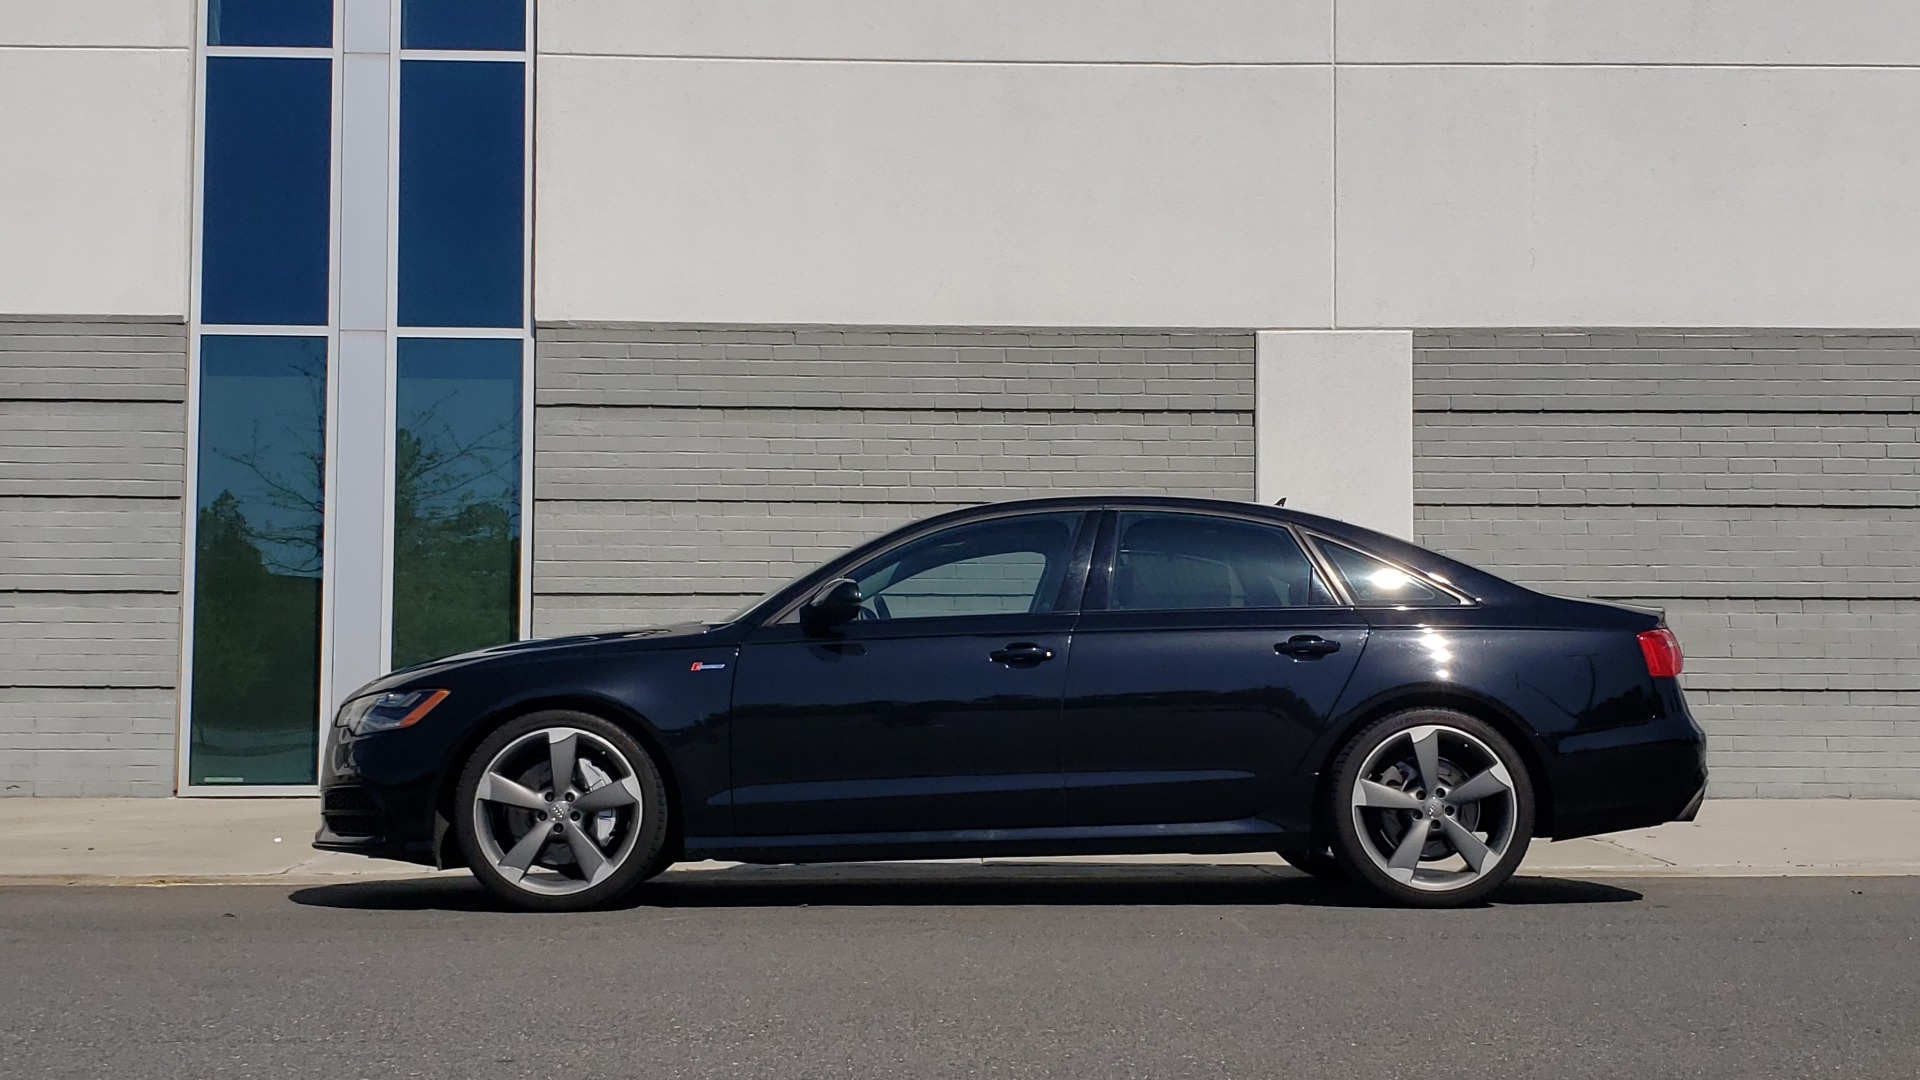 Used 2015 Audi A6 3.0T PRESTIGE / BLACK OPTIC / CLD WTHR / BOSE / HUD / SUNROOF for sale Sold at Formula Imports in Charlotte NC 28227 4